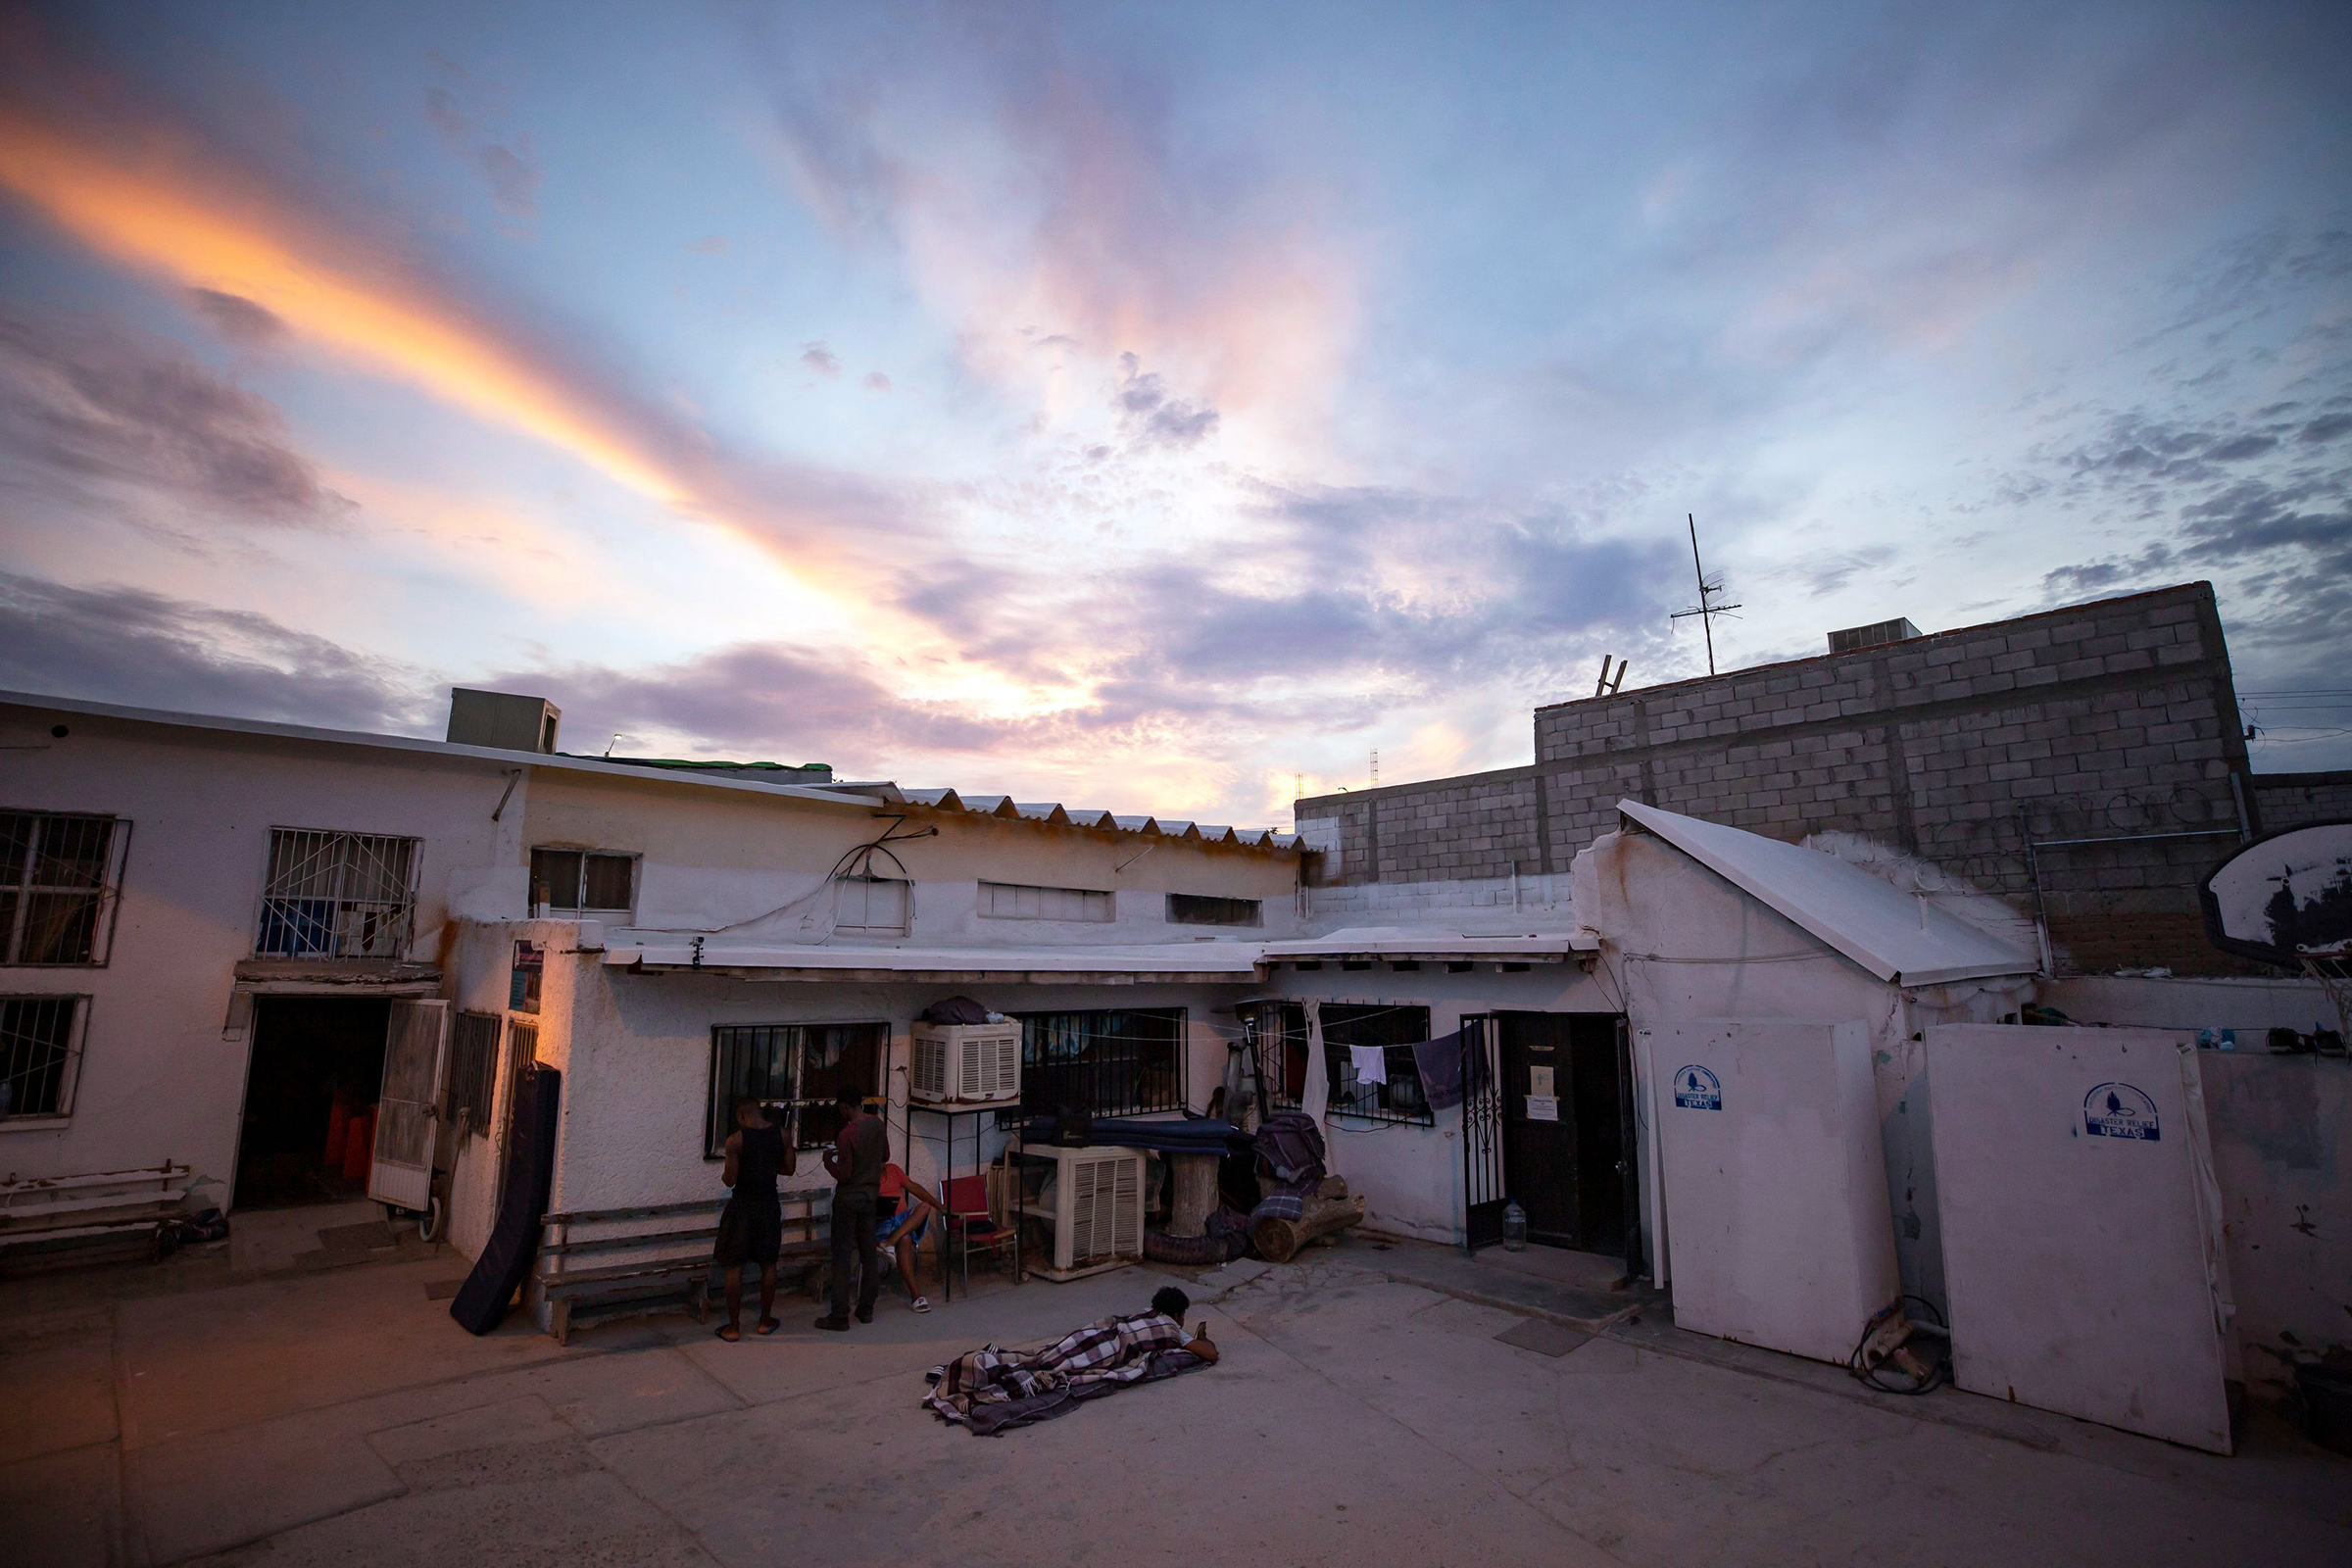 A migrant wakes up before sunrise at El Buen Pastor shelter for migrants in Cuidad Juarez, MexicoMexico Living in Limbo - 26 Jul 2019